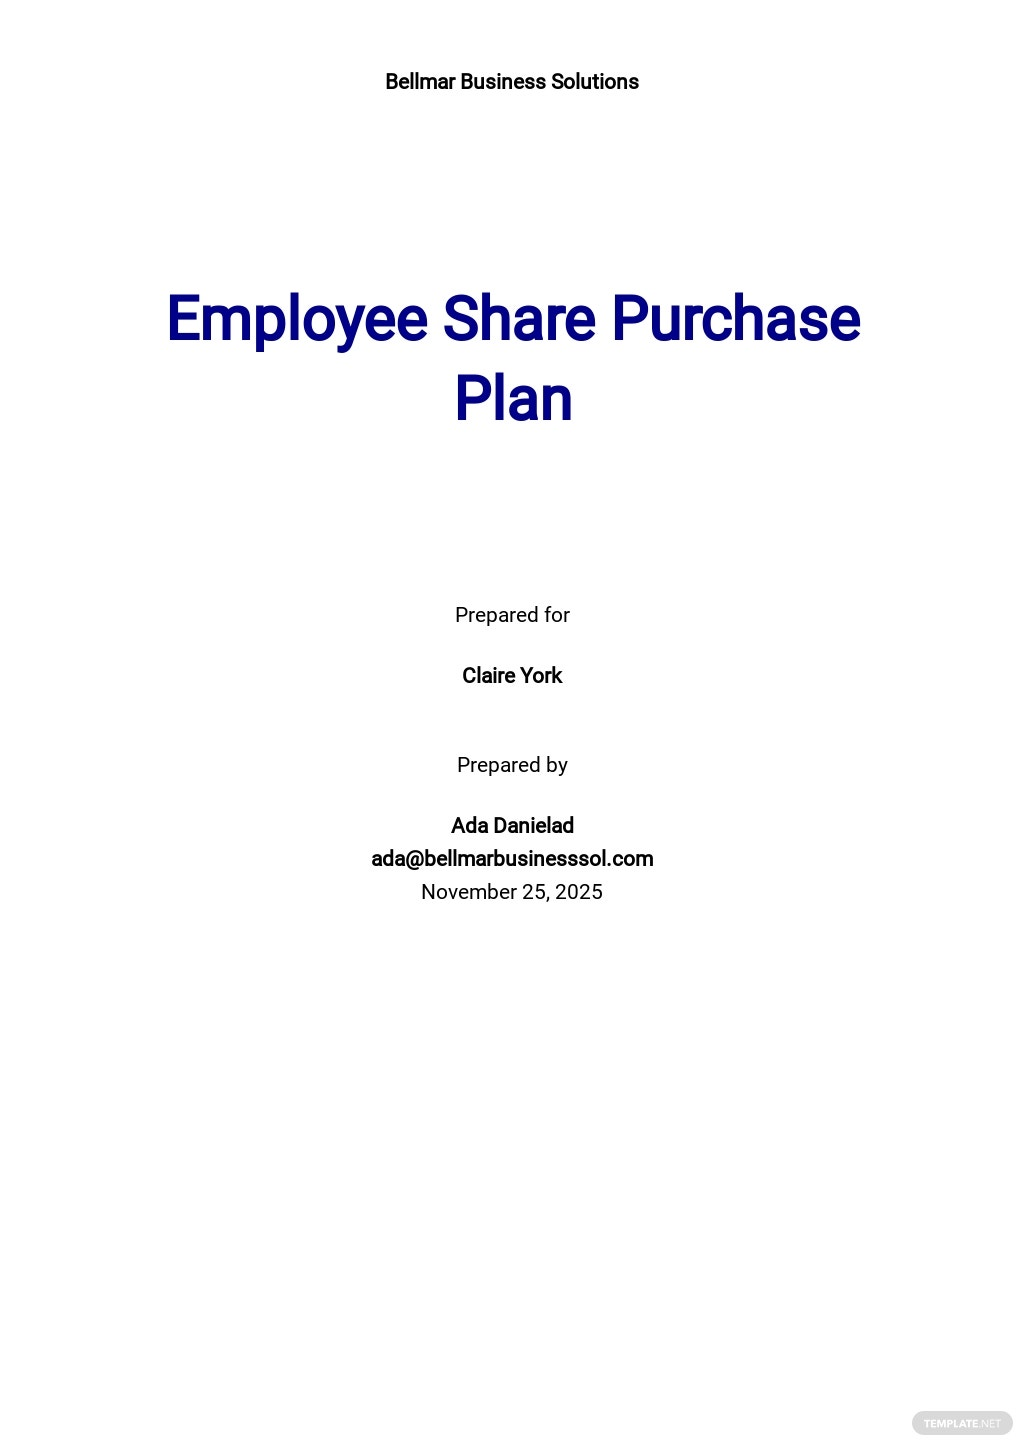 Employee Share Purchase Plan Template